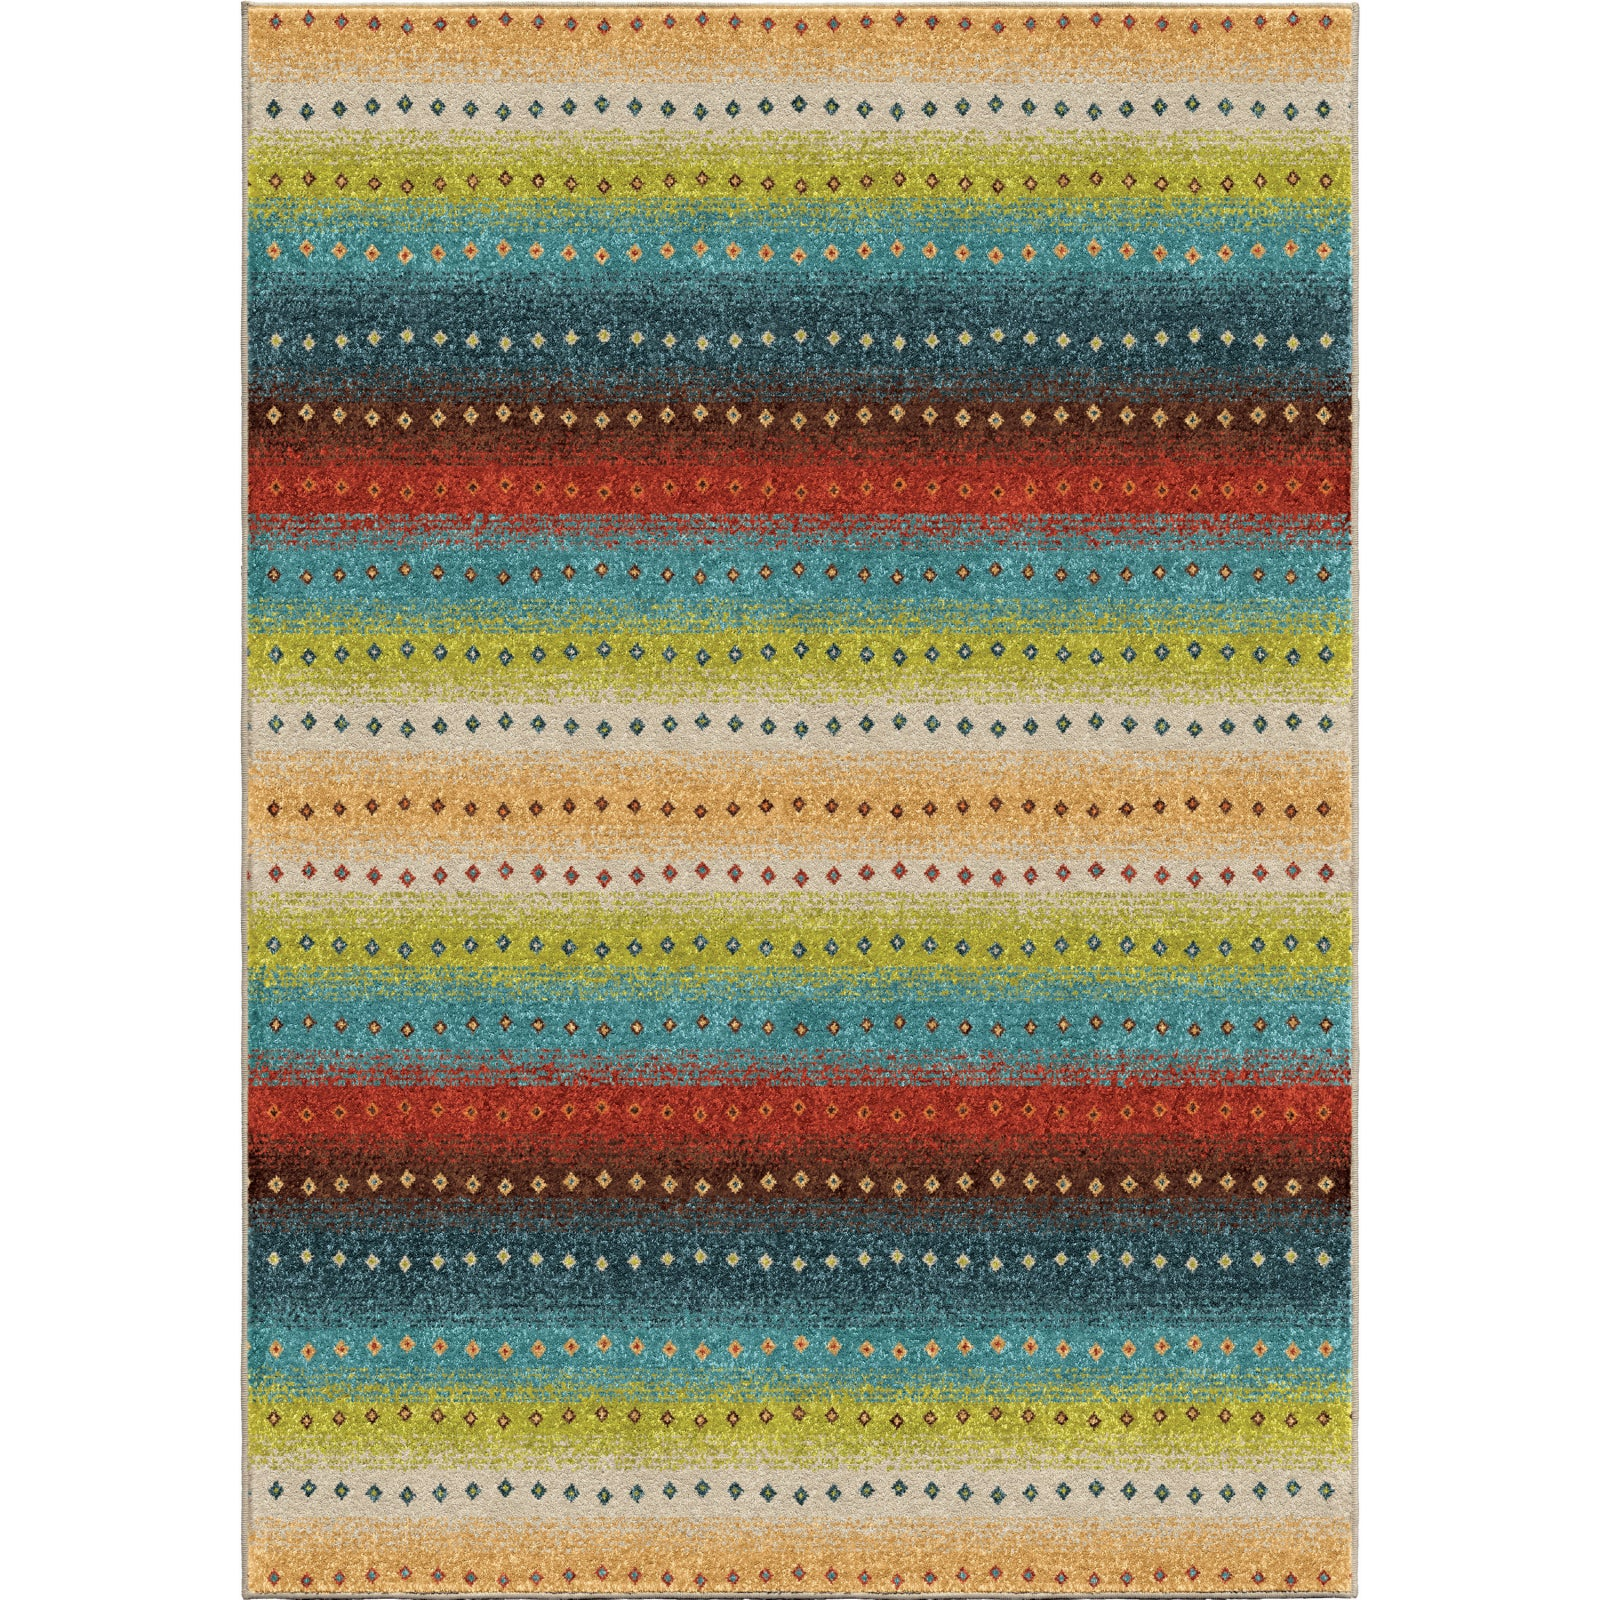 Orian Rugs Promise Sable Stripes Multi Area Rug main image